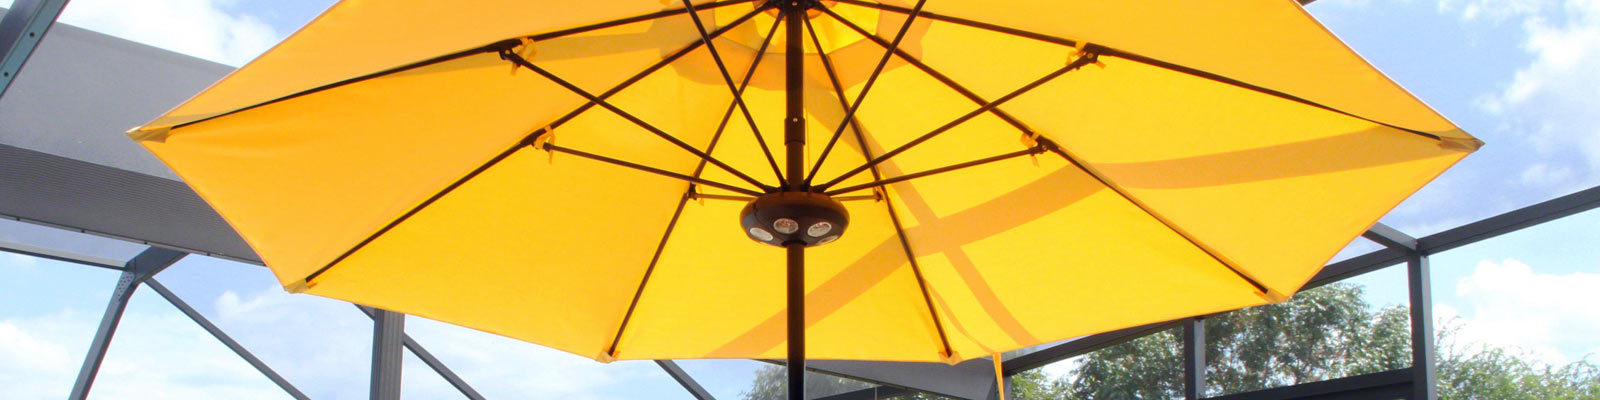 Residential Umbrellas